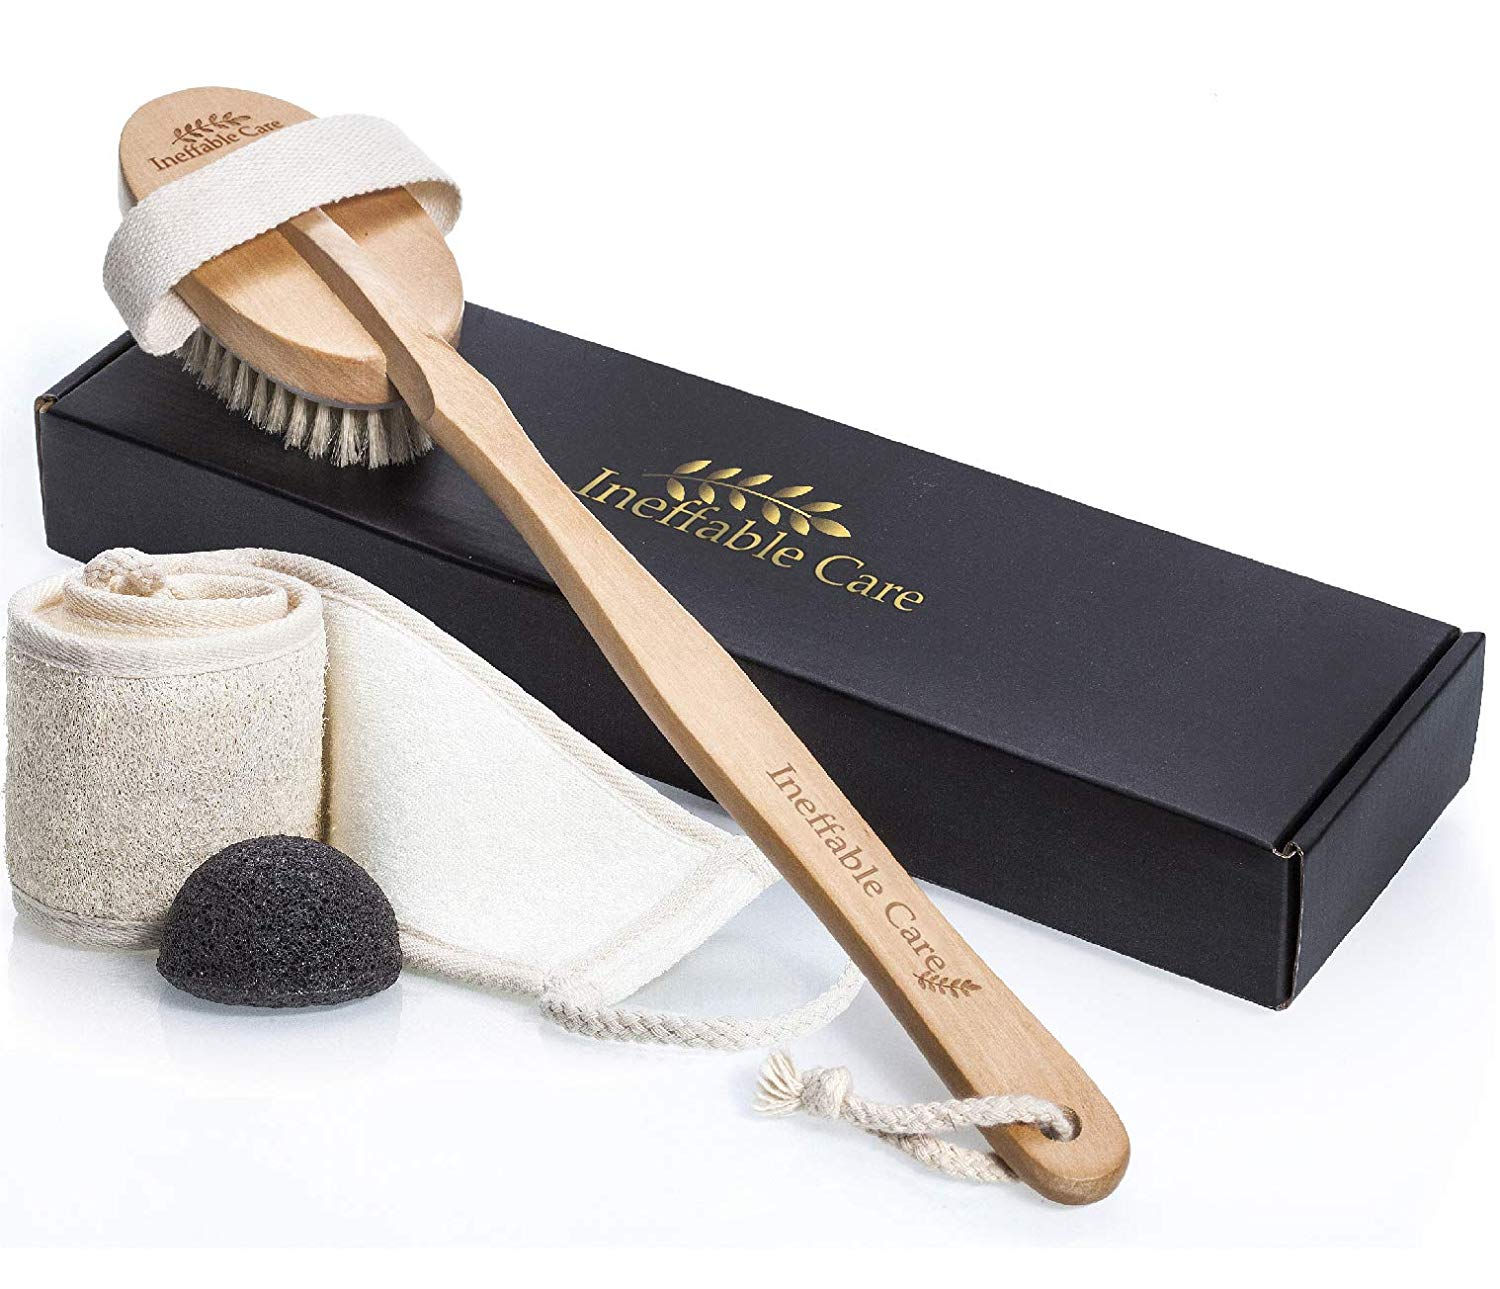 Loofah Back Scrubber & Body Brush for Dry Skin Brushing | Best Shower Back Scrubbers